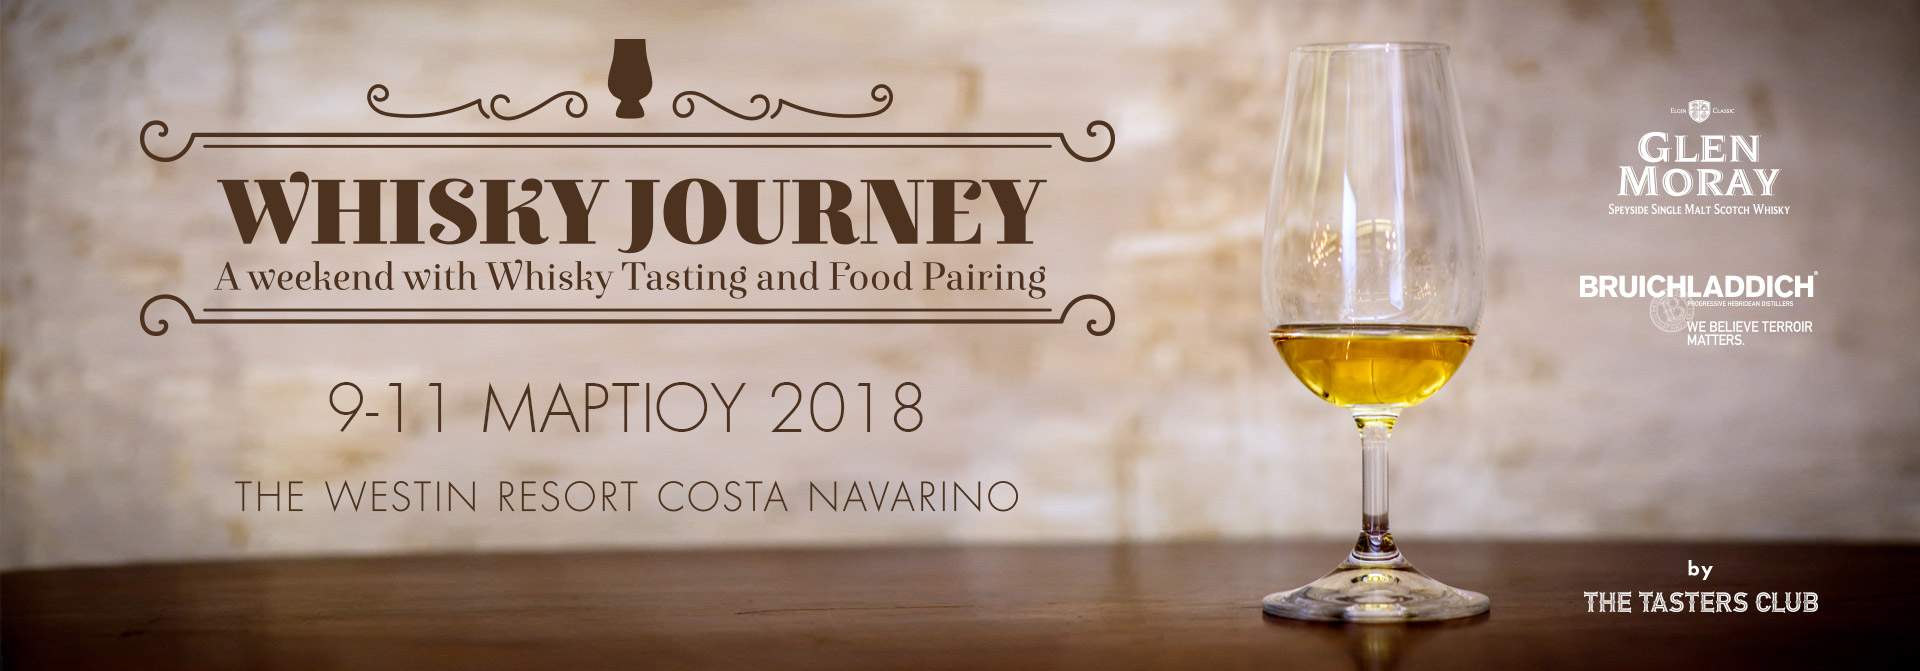 The Tasters Club Whisky Journey Costa Navarino 2018